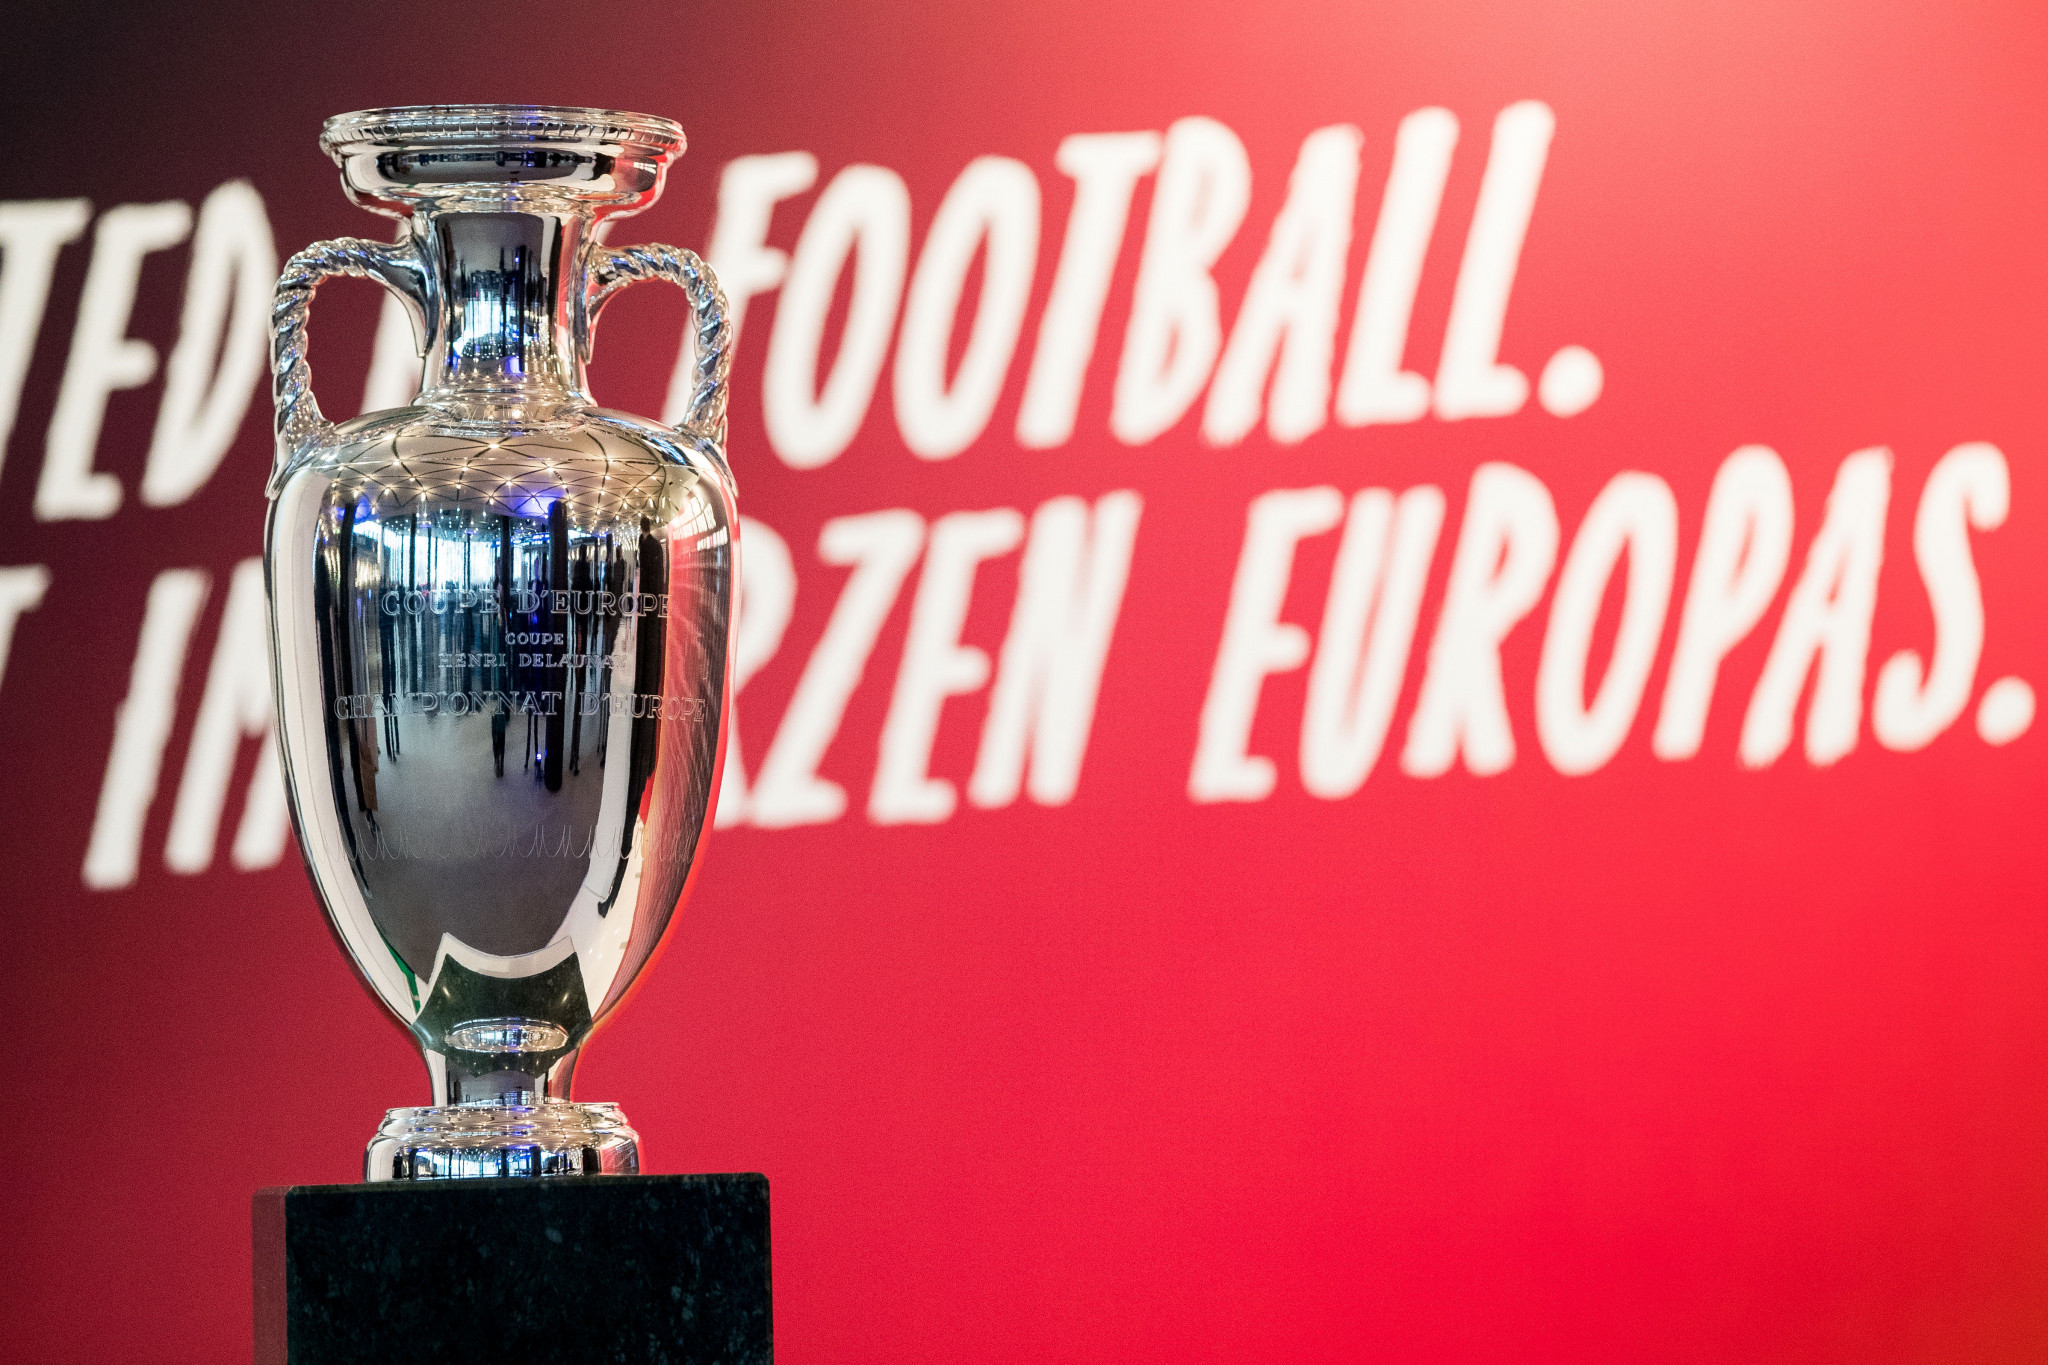 Turkey's Euro 2024 bid boosted by support from DigiTurk